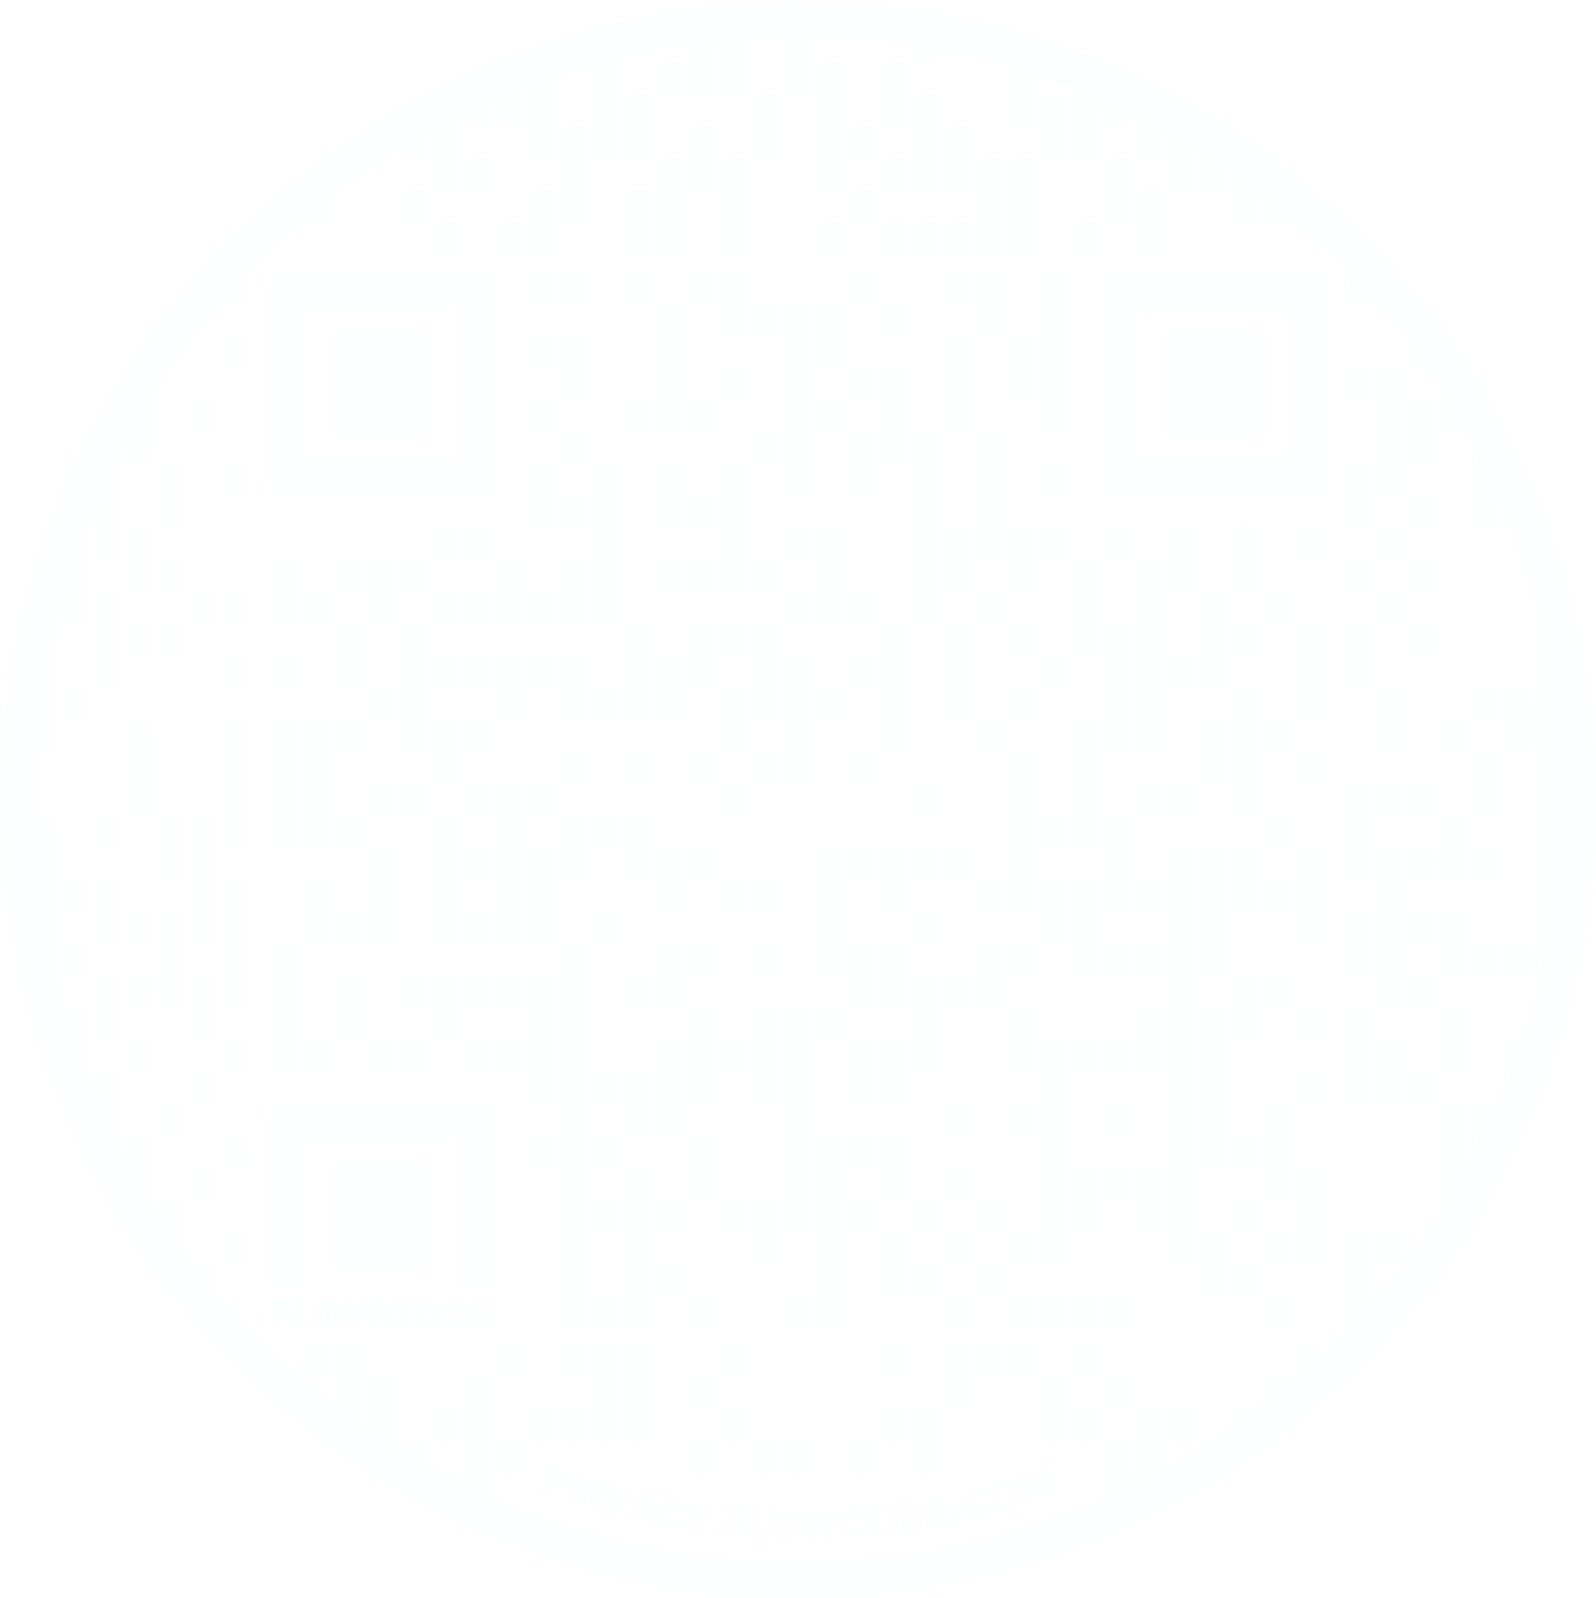 krueger-family-farm-fire-relief-fund-21-qr-code.png